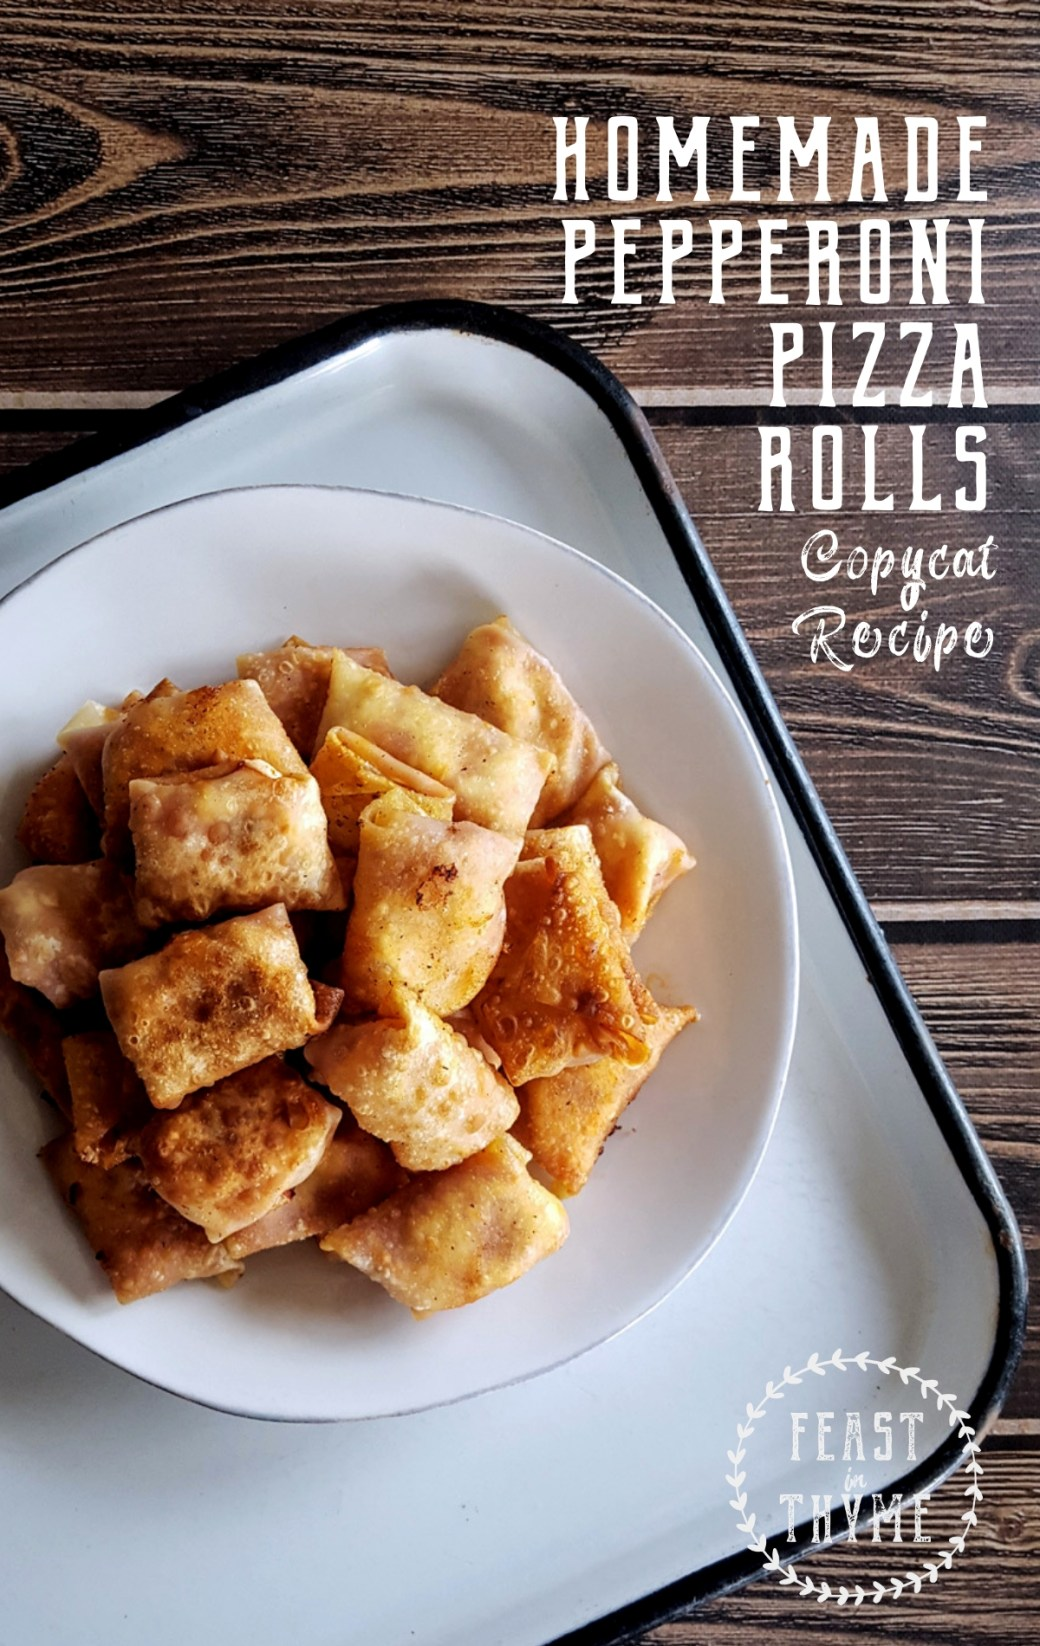 Easy Homemade Pepperoni Pizza Rolls [Copycat Recipe]